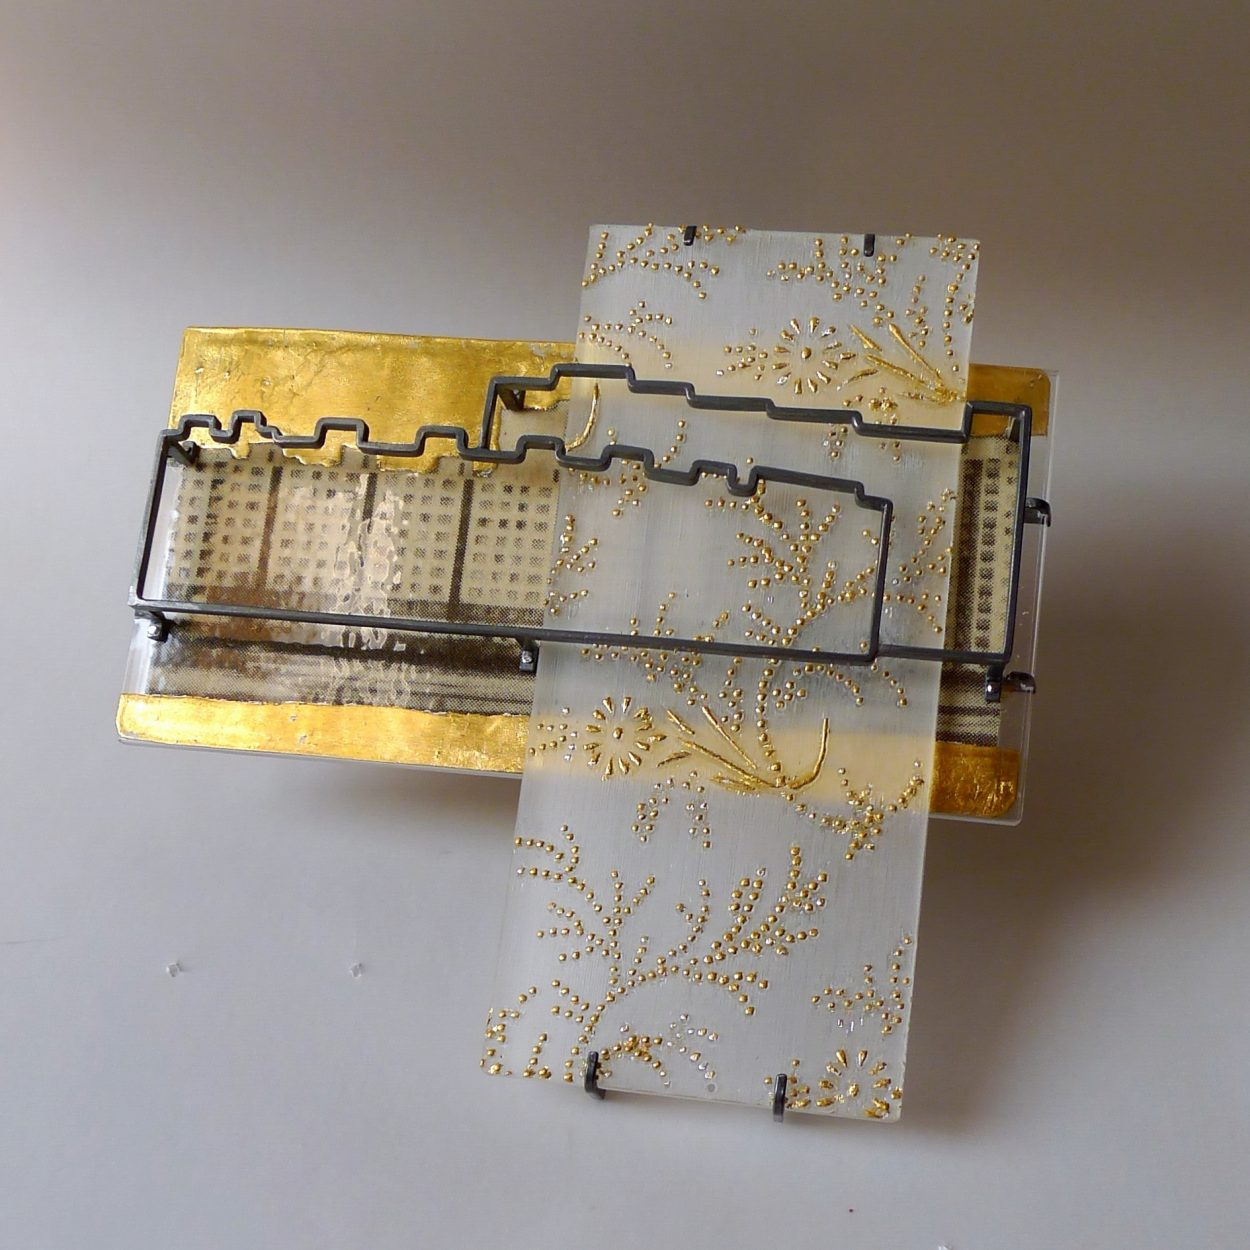 """Jana Machatová: """"Where are you from?"""" brooch, plexiglass,silver, paper in laminated plastic, gold foil (photo by Peter Machata)"""